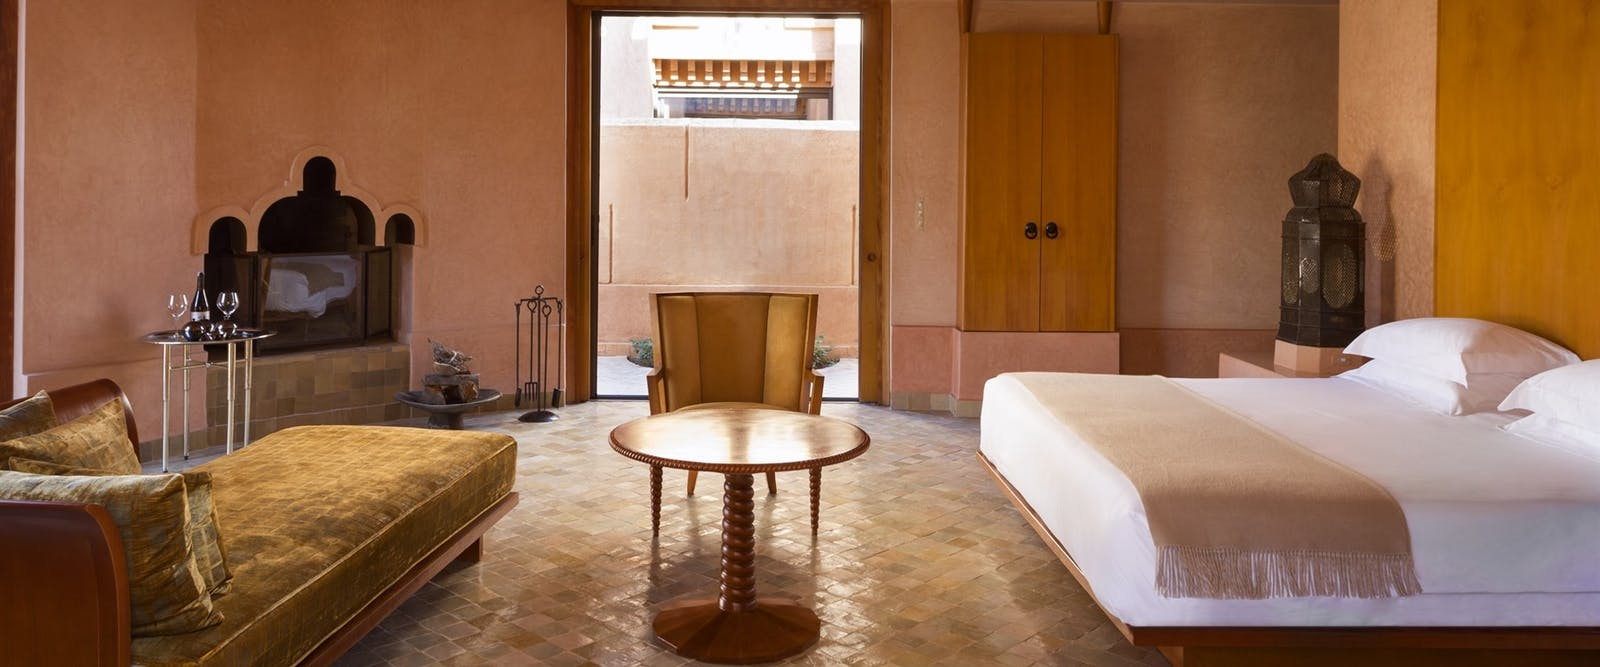 Pavilion Bedroom at Amanjena, Marrakech, Morocco